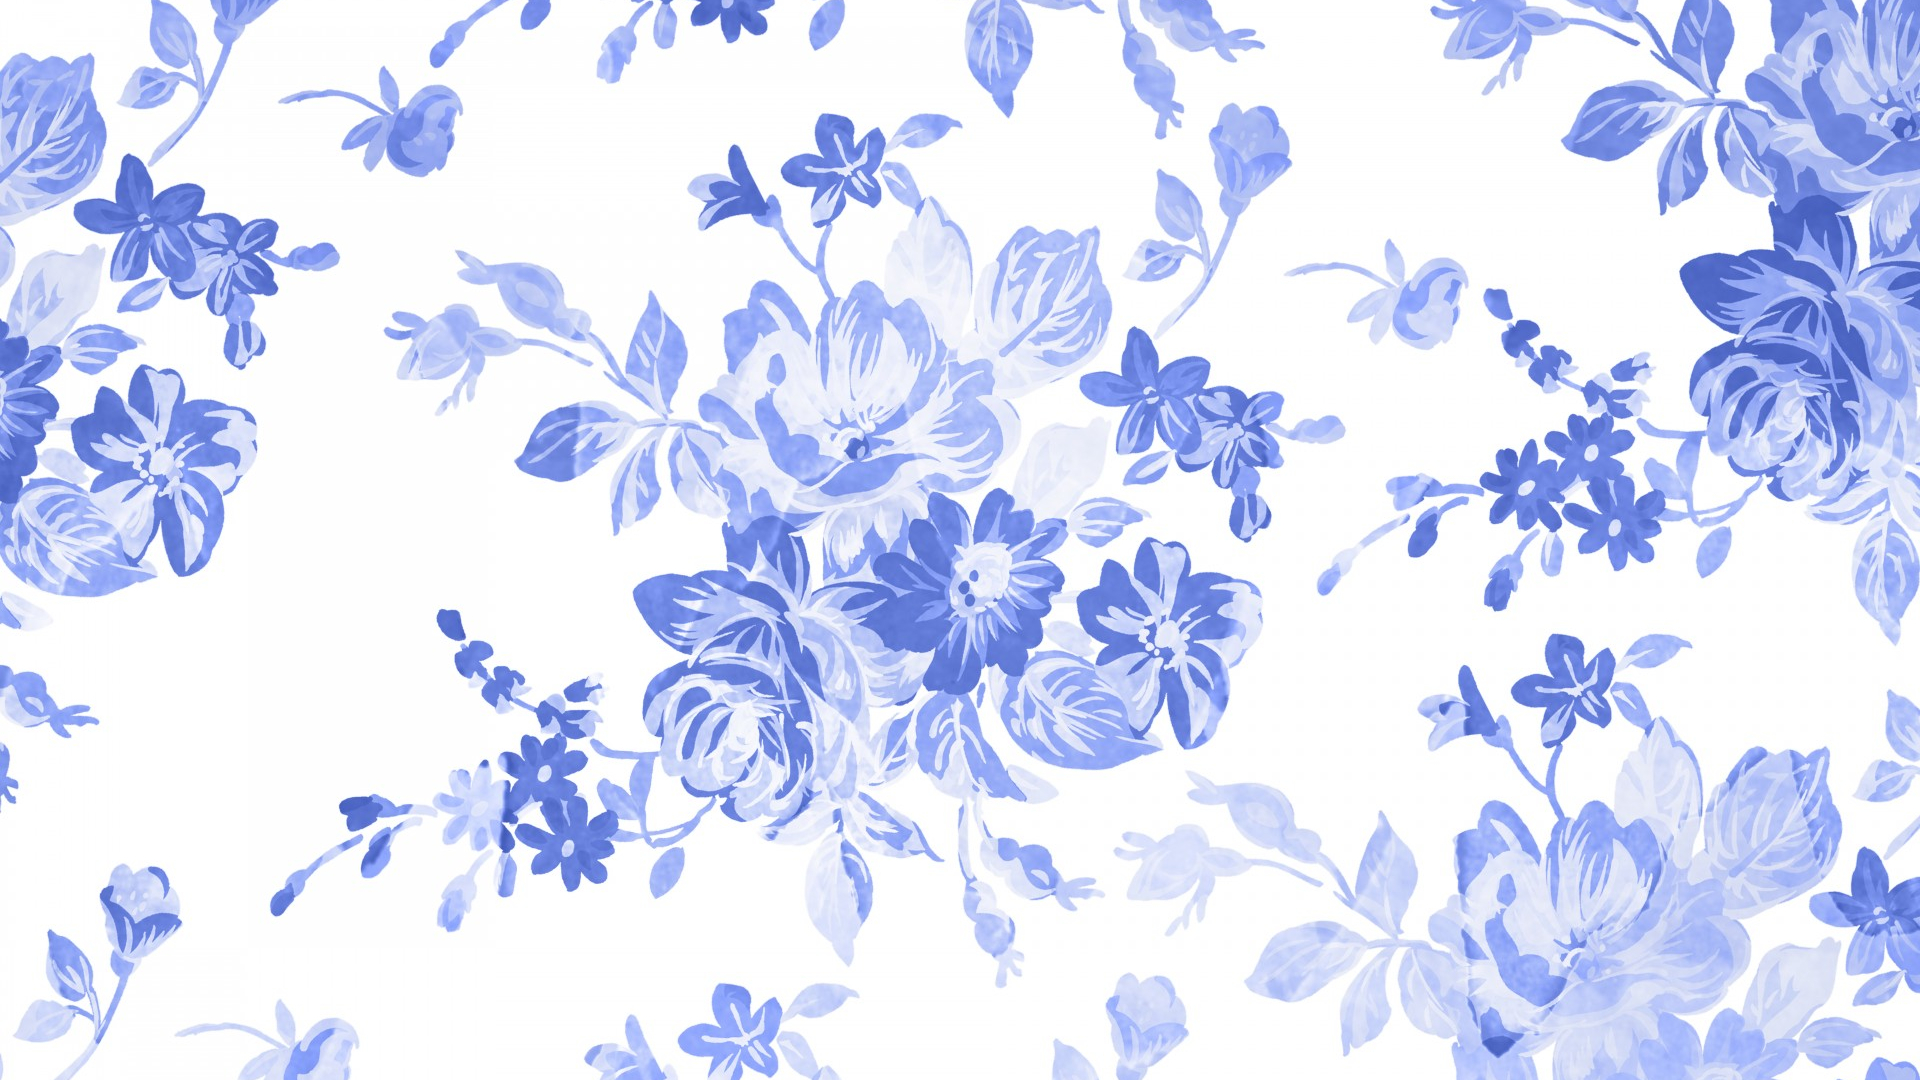 Free Download Blue Floral Watercolor Background Stock Photo Hd